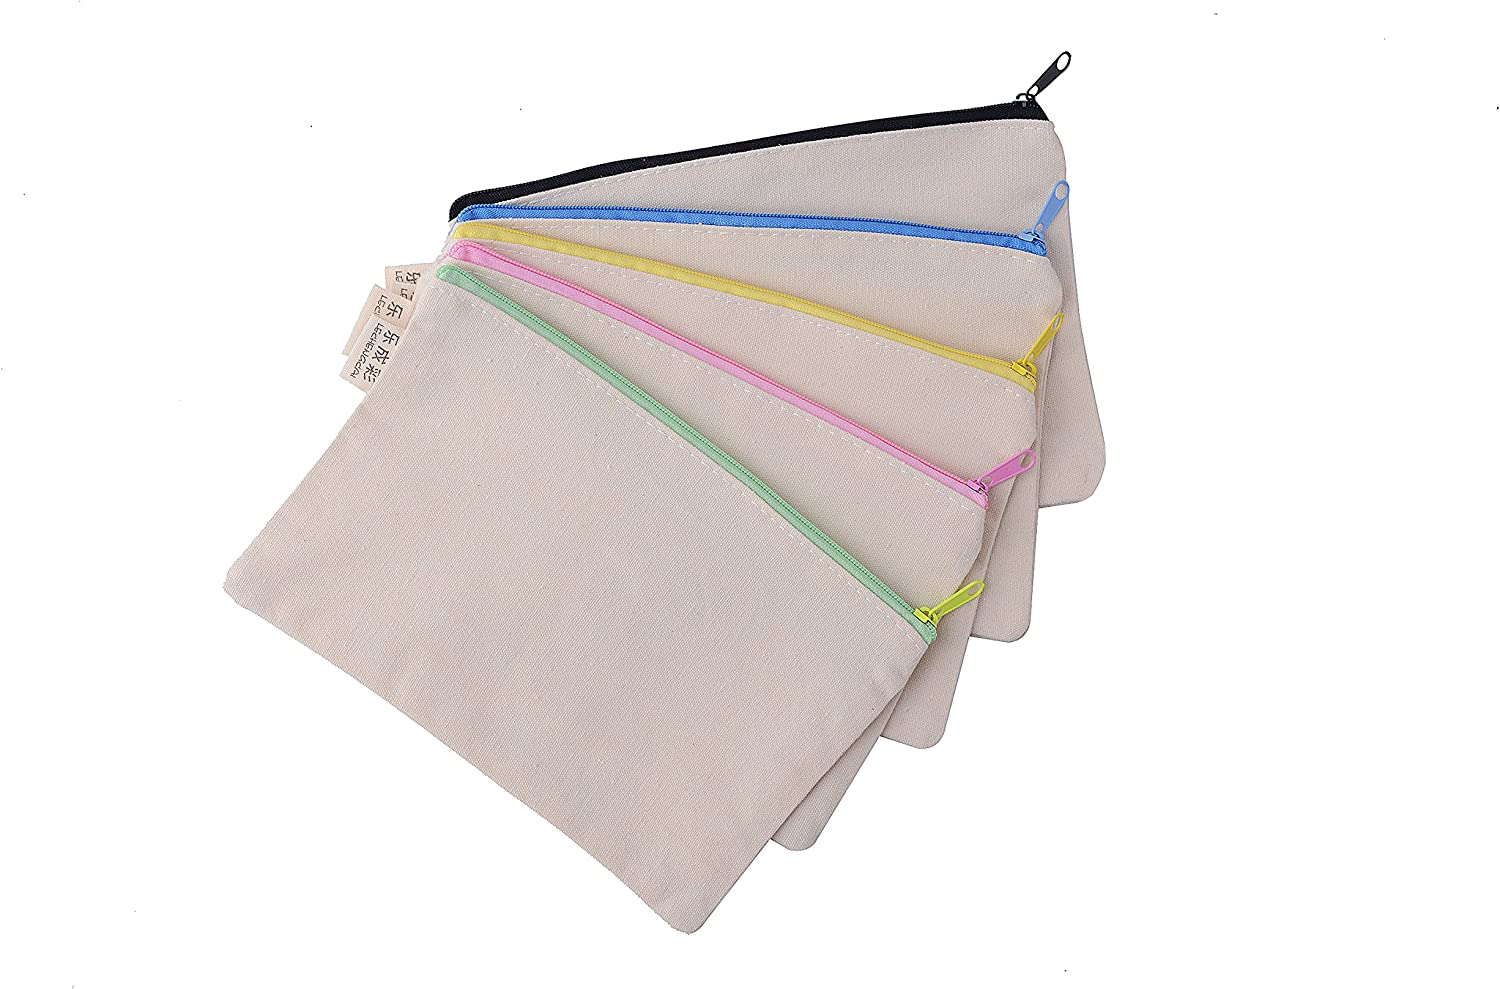 Large Blank Canvas Pen Pencil Case Stationery Pouch Coin bag Cosmetic Bags, Set of 5